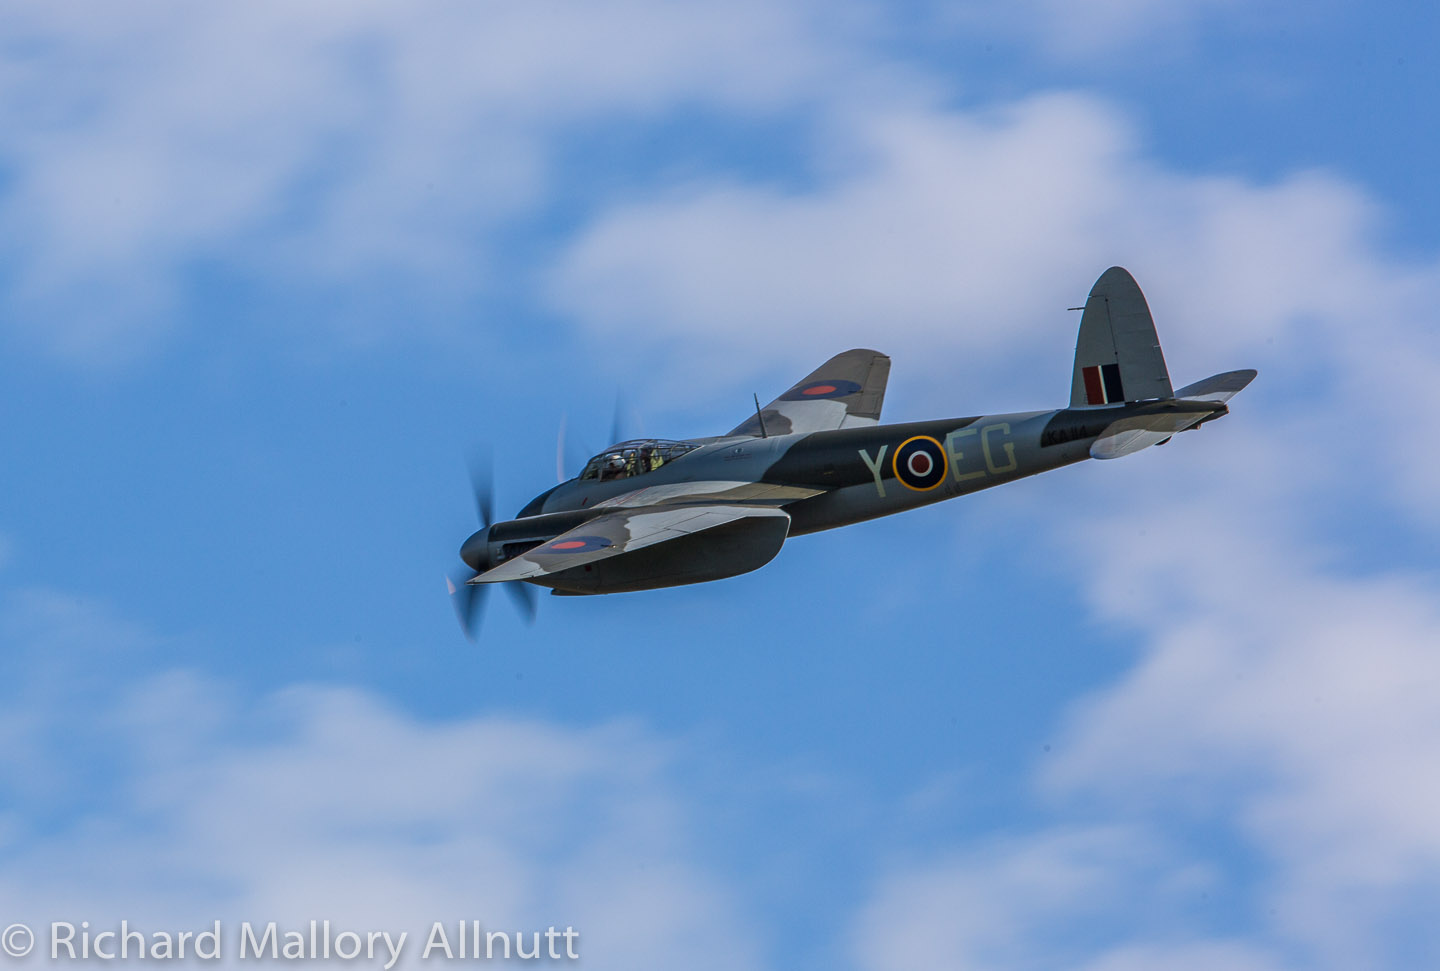 _C8A1027 - Richard Mallory Allnutt photo - Warbirds Over the Beach - Military Aviation Museum - Pungo, VA - May 17, 2014